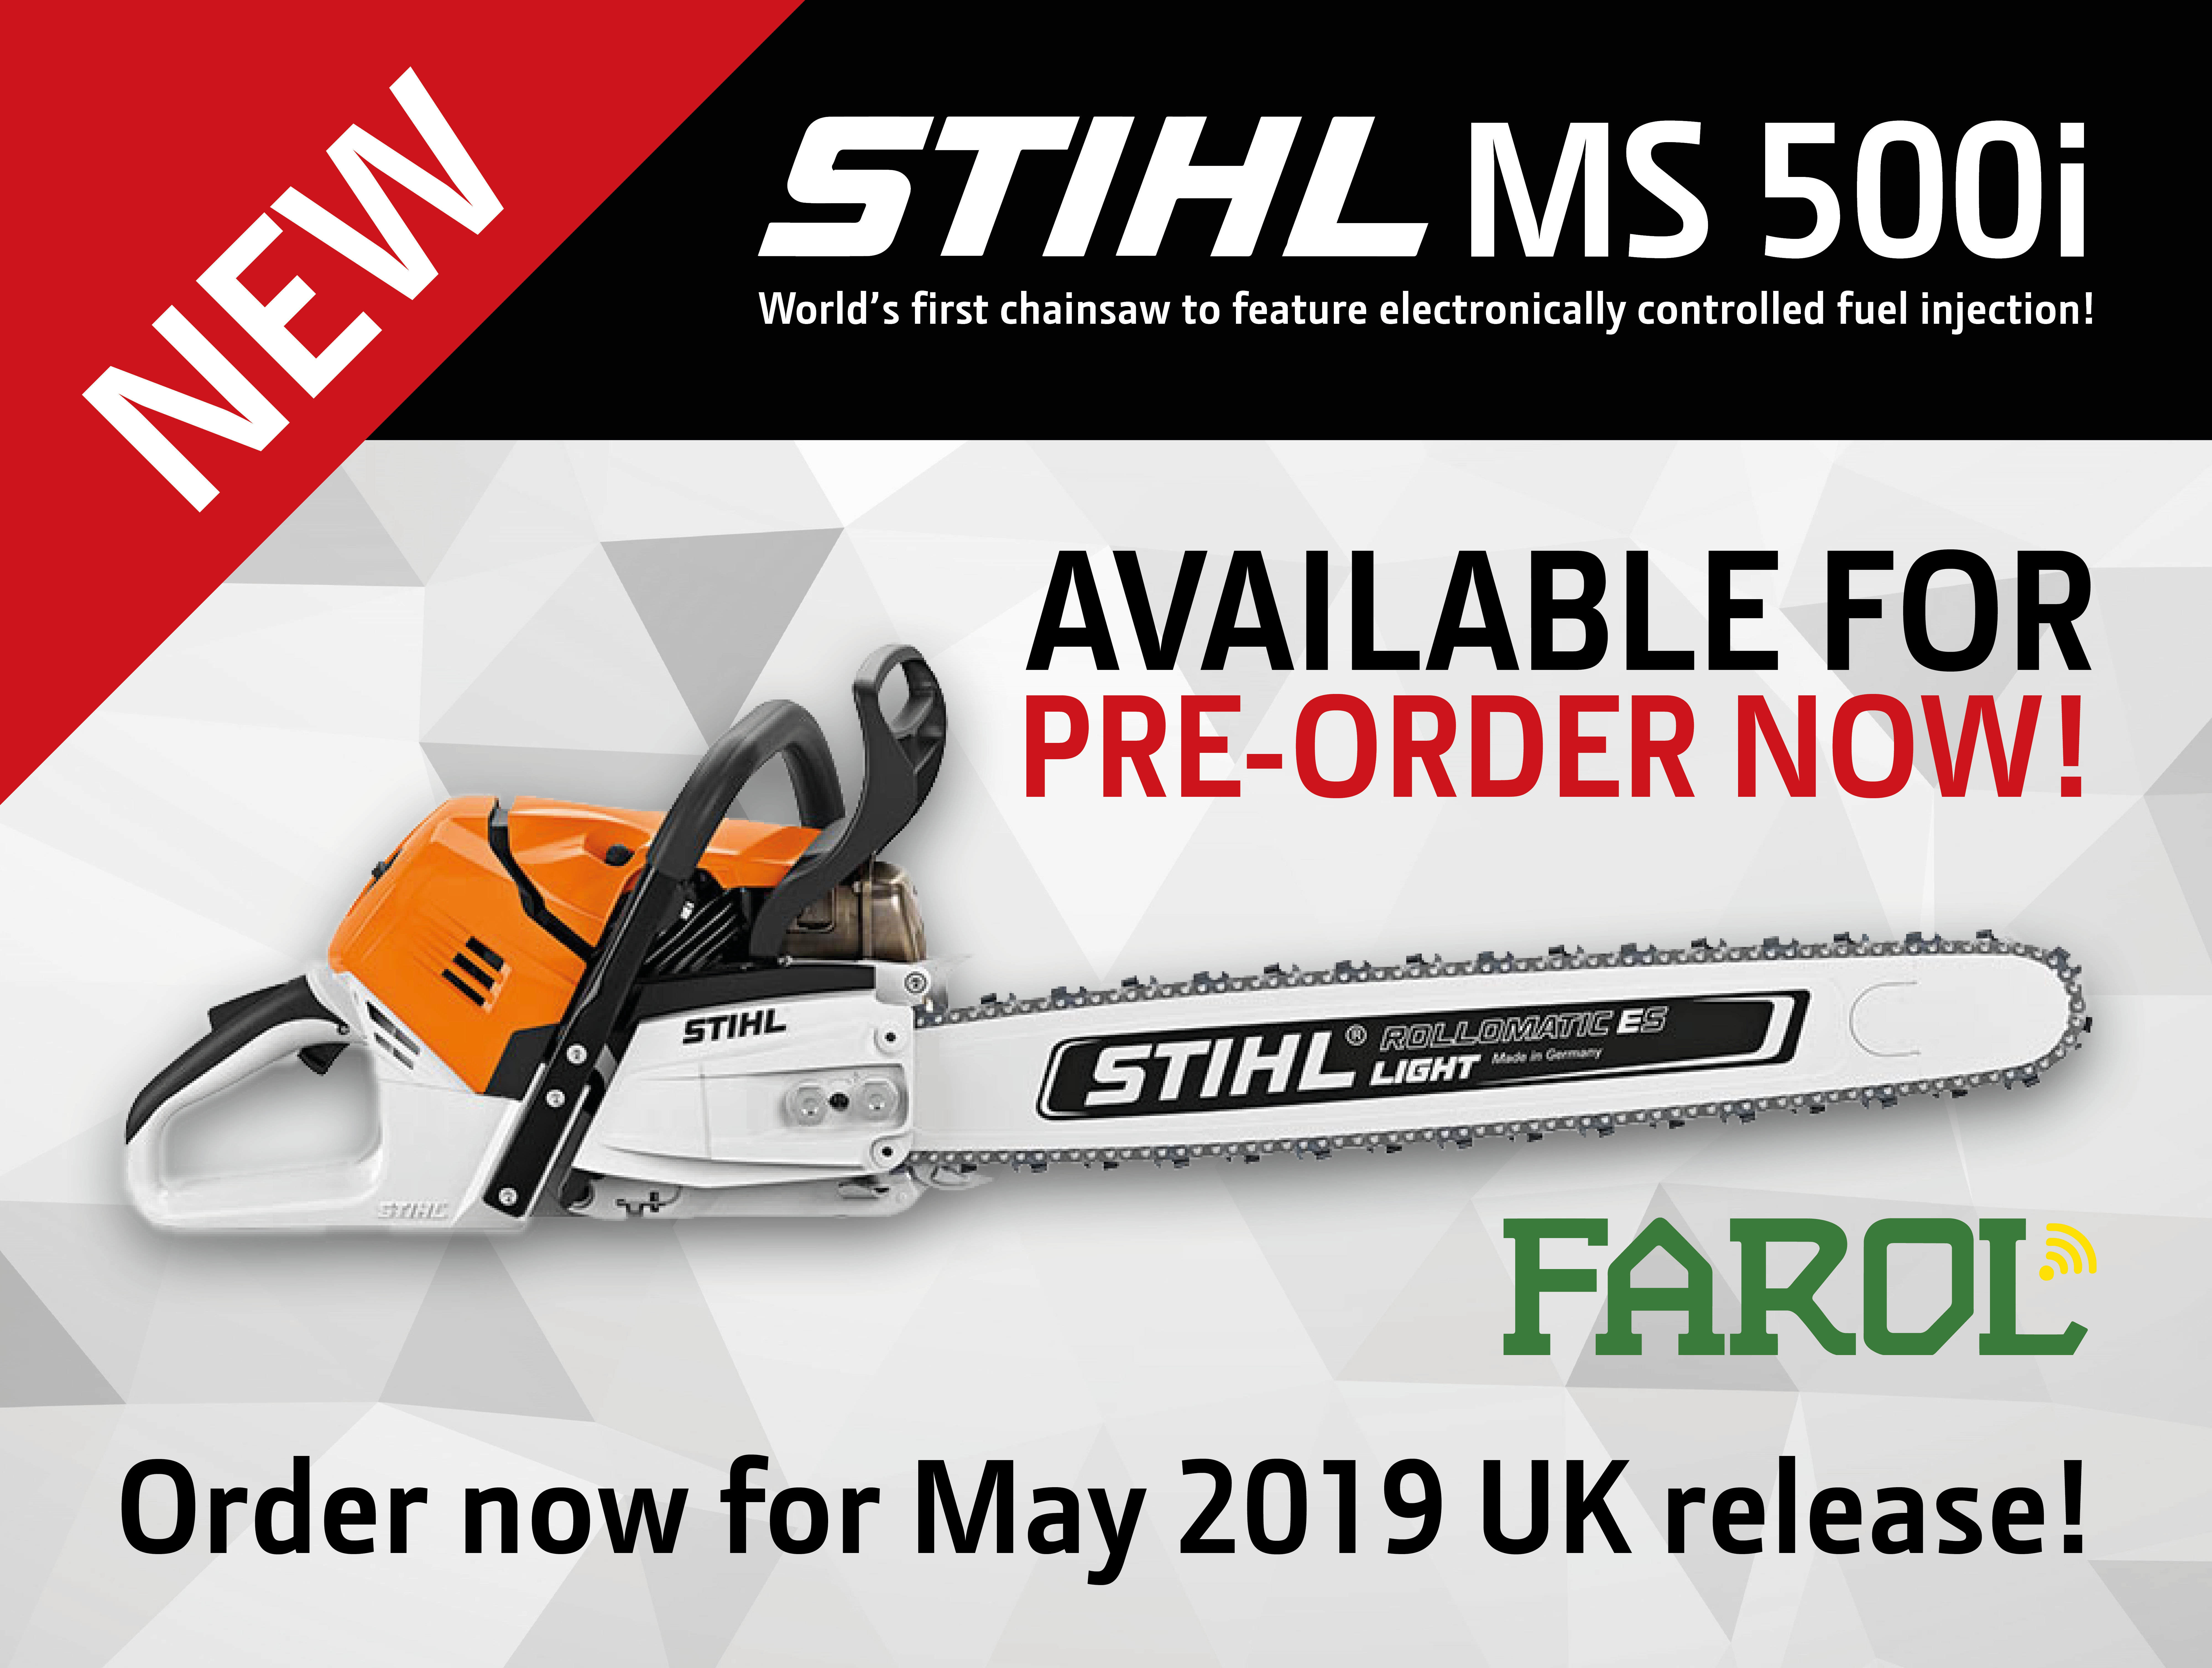 New STIHL MS 500i Available for Pre-order